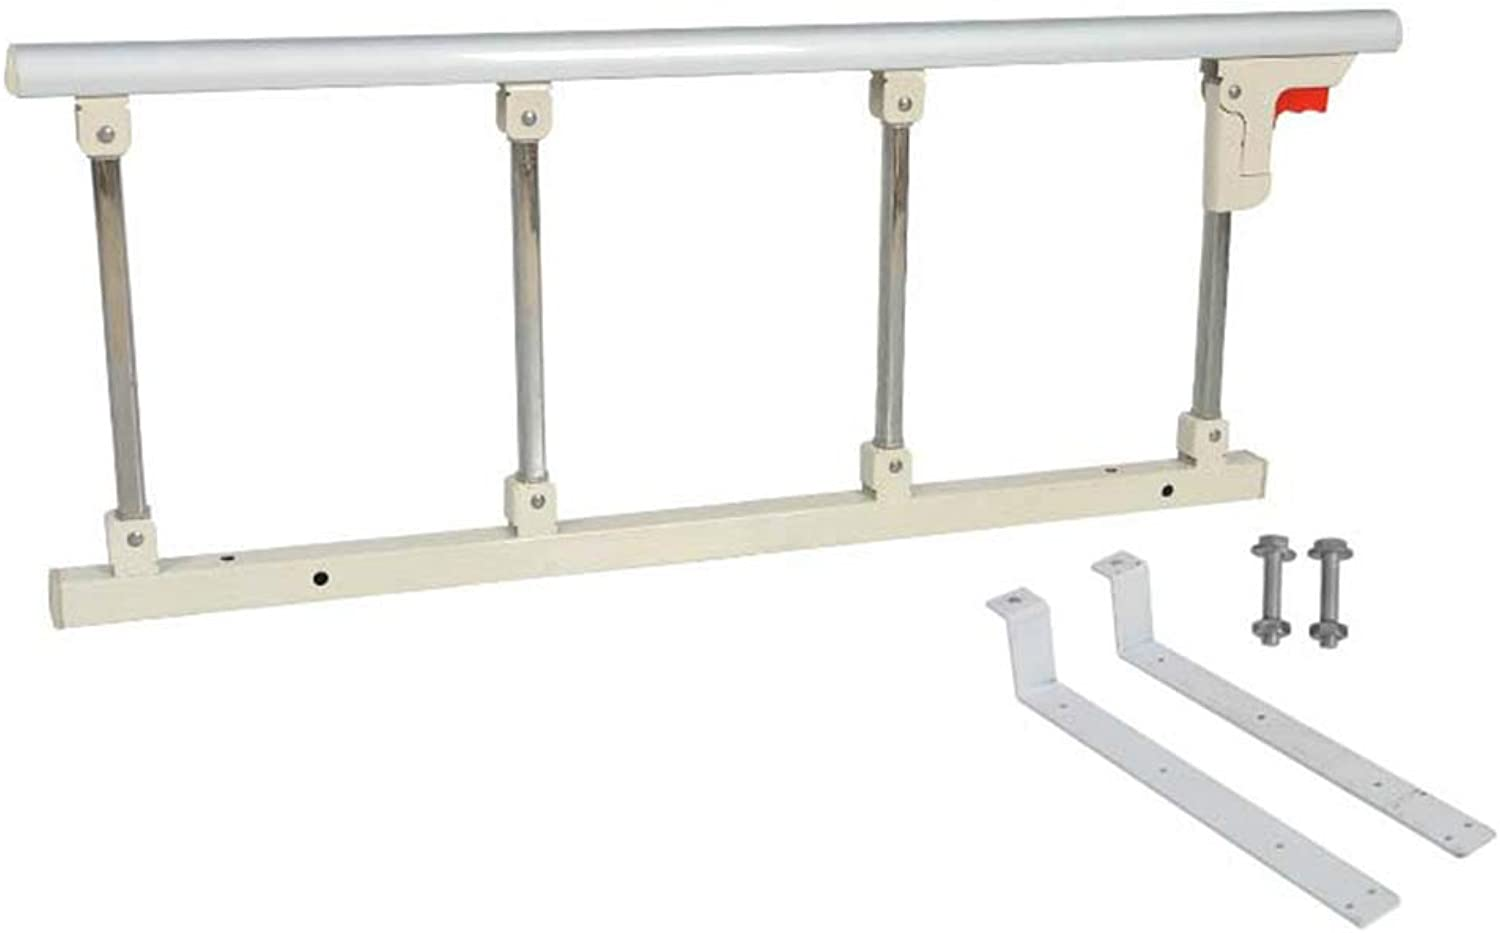 LXLA - Bed Assist Rail, Folding Home Bed Rail Bar Handle for Elderly and Seniors, Adult Bed Assist Bar - 95cm length